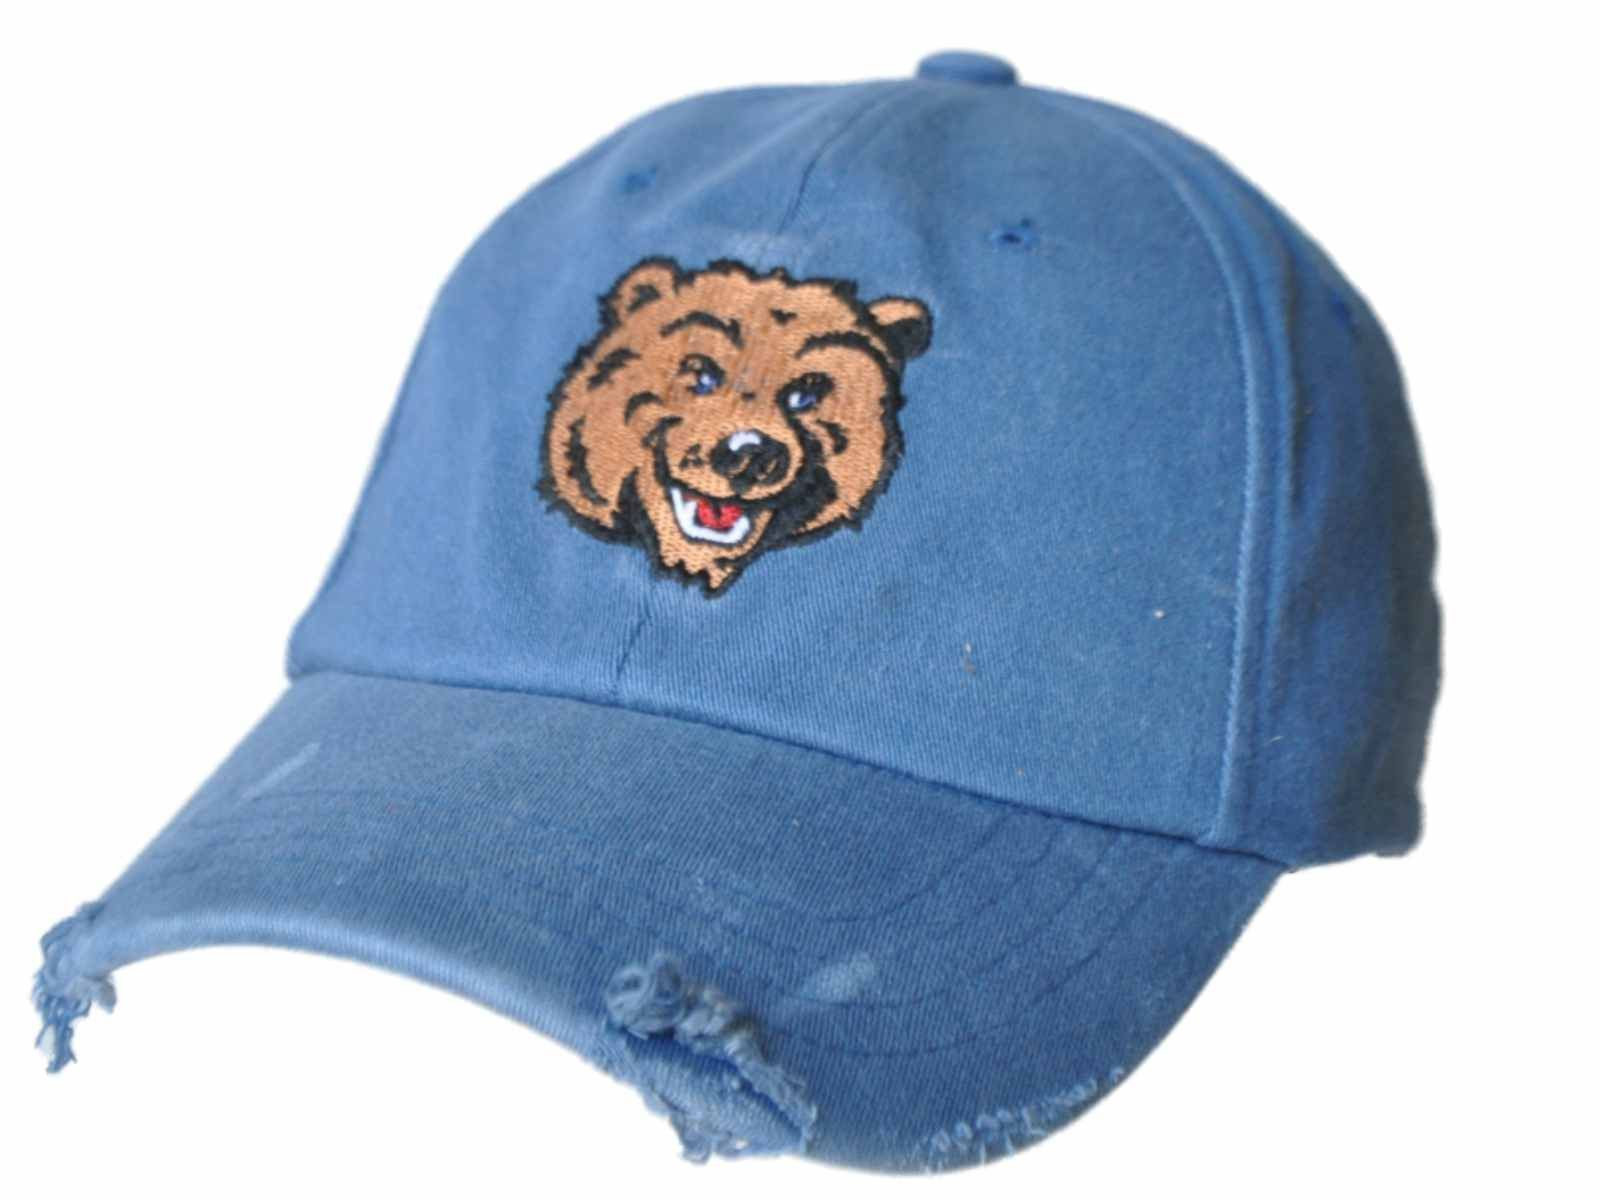 wholesale dealer 6f78f 24d8f ... uk ucla bruins retro brand light blue worn vintage style flexfit hat  cap a2116 6835d